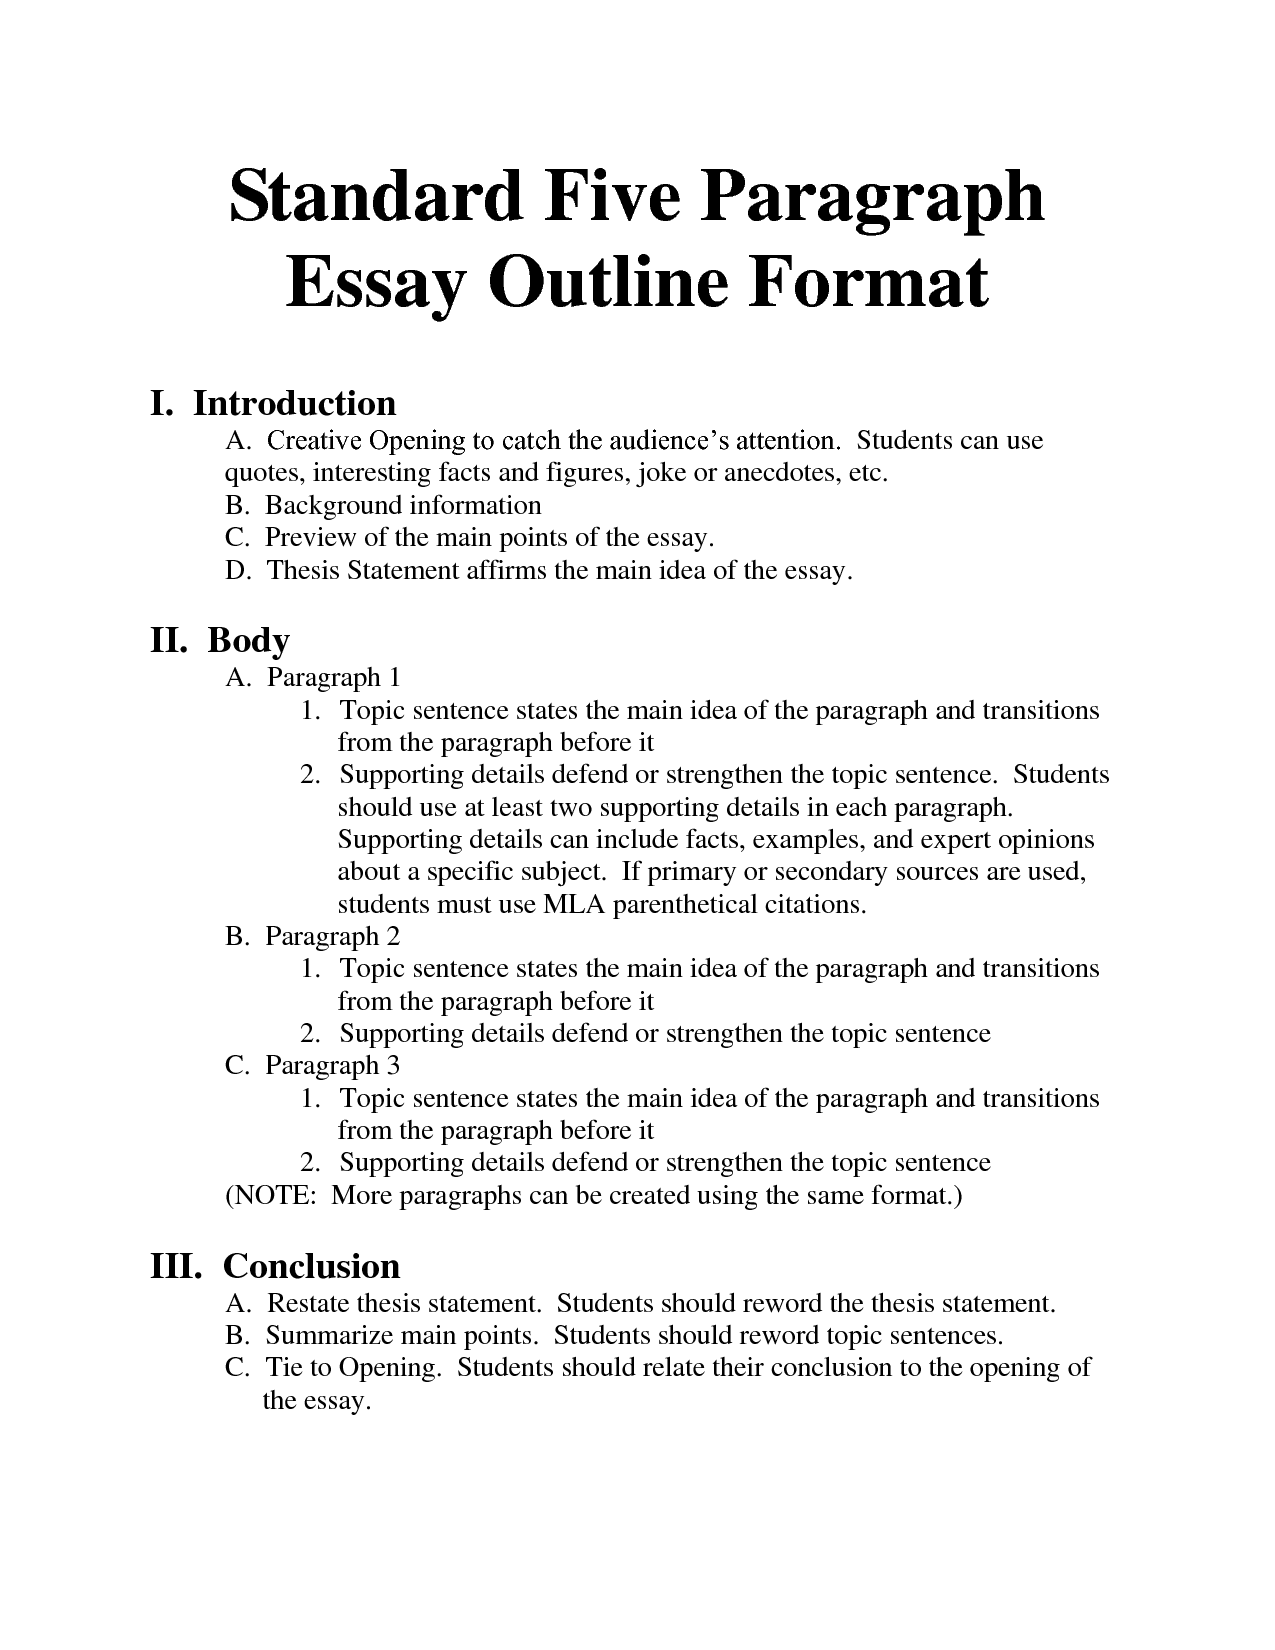 writing english essay outline 7 super-awesome essay outline templates 1 analytical essay outline  this is a fun essay to write because all the material for it exists in your own head you don't have to research or argue you simply offer the reader a meaningful glimpse into your life these essays don't have to be serious  he teaches english composition courses, tutors a diverse student body in a writing center,.